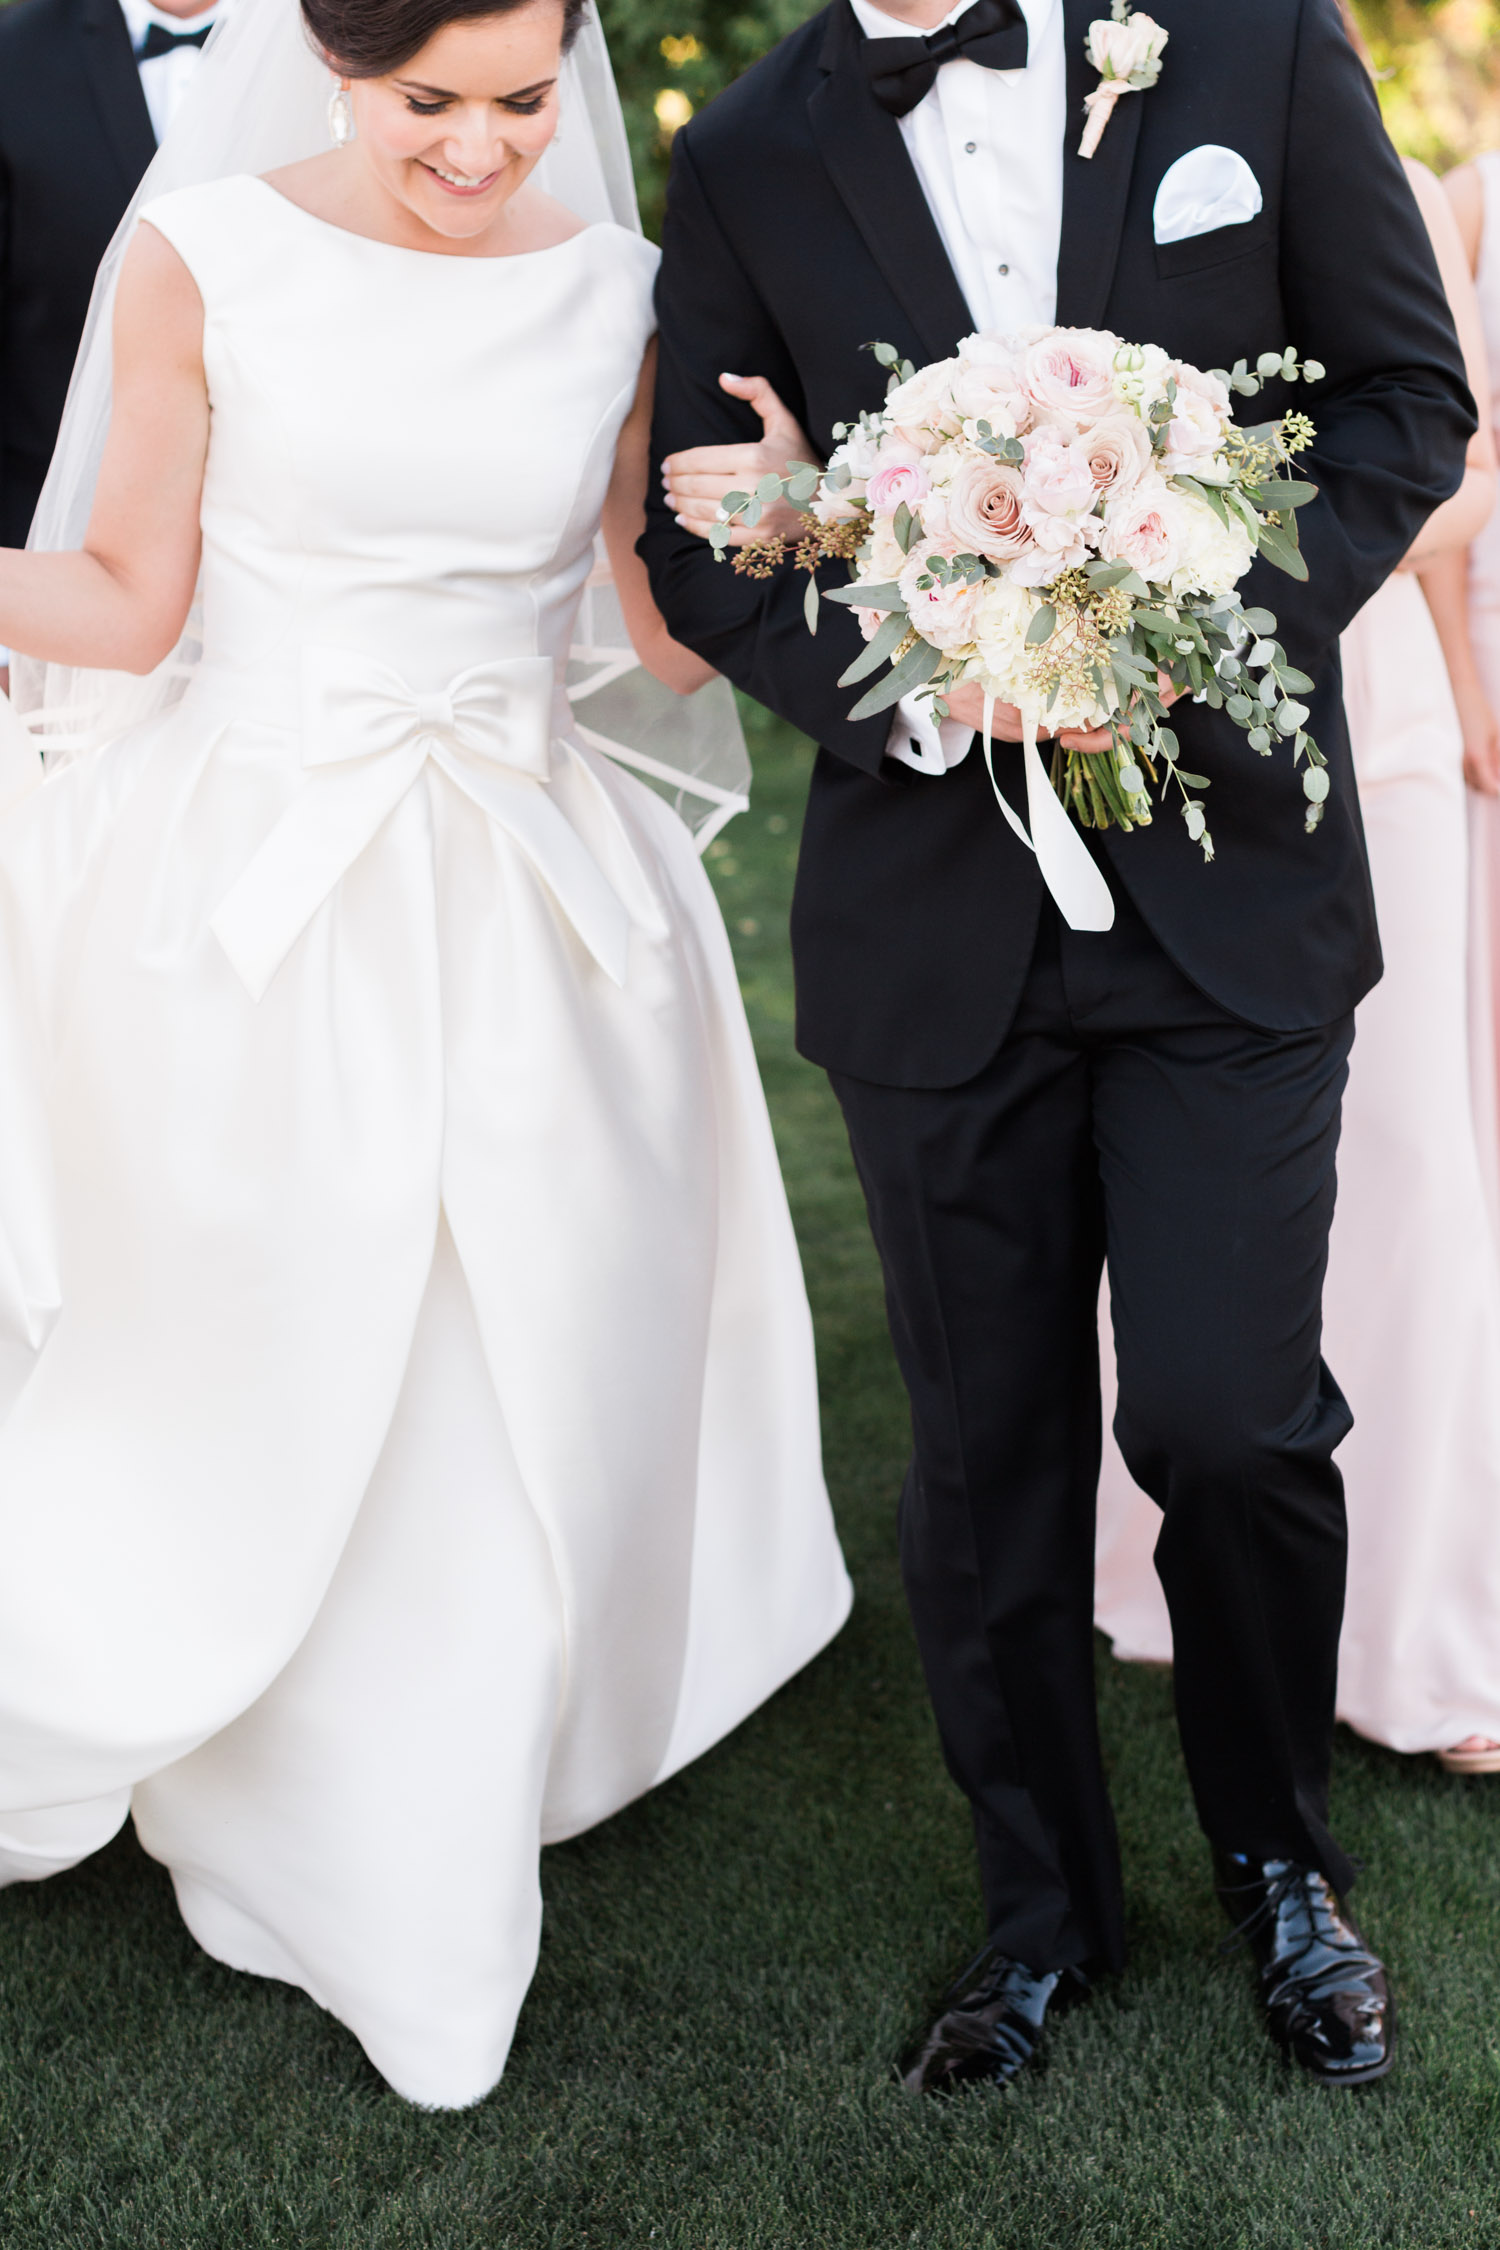 Smiling bride and groom with bridal party